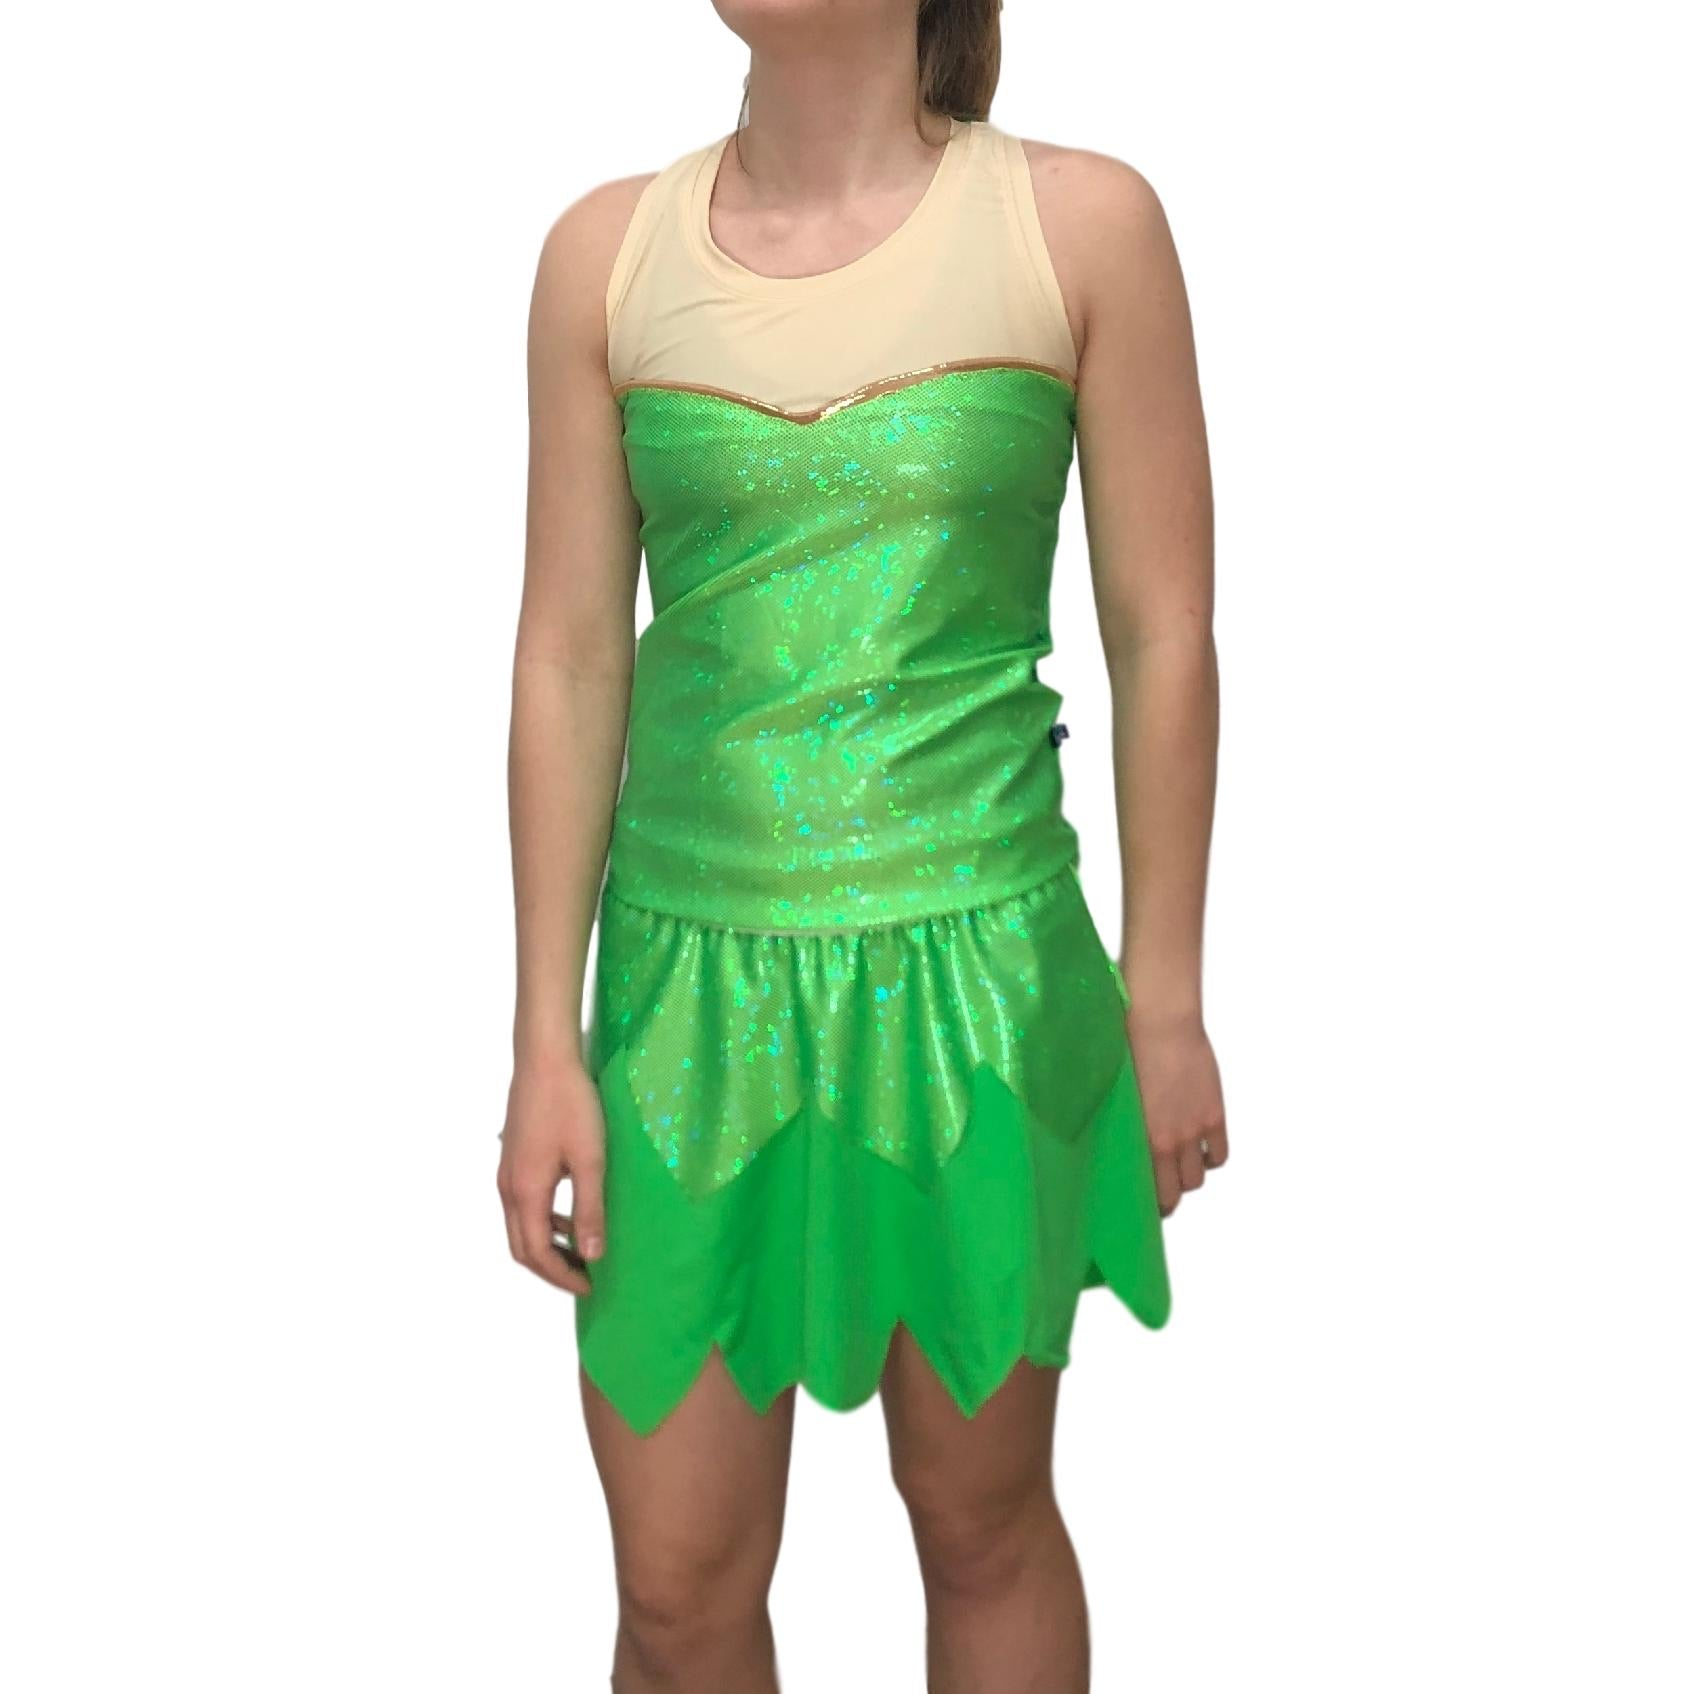 """Tinkerbell"" Bling Woman's Running Shirt - Rock City Skirts"